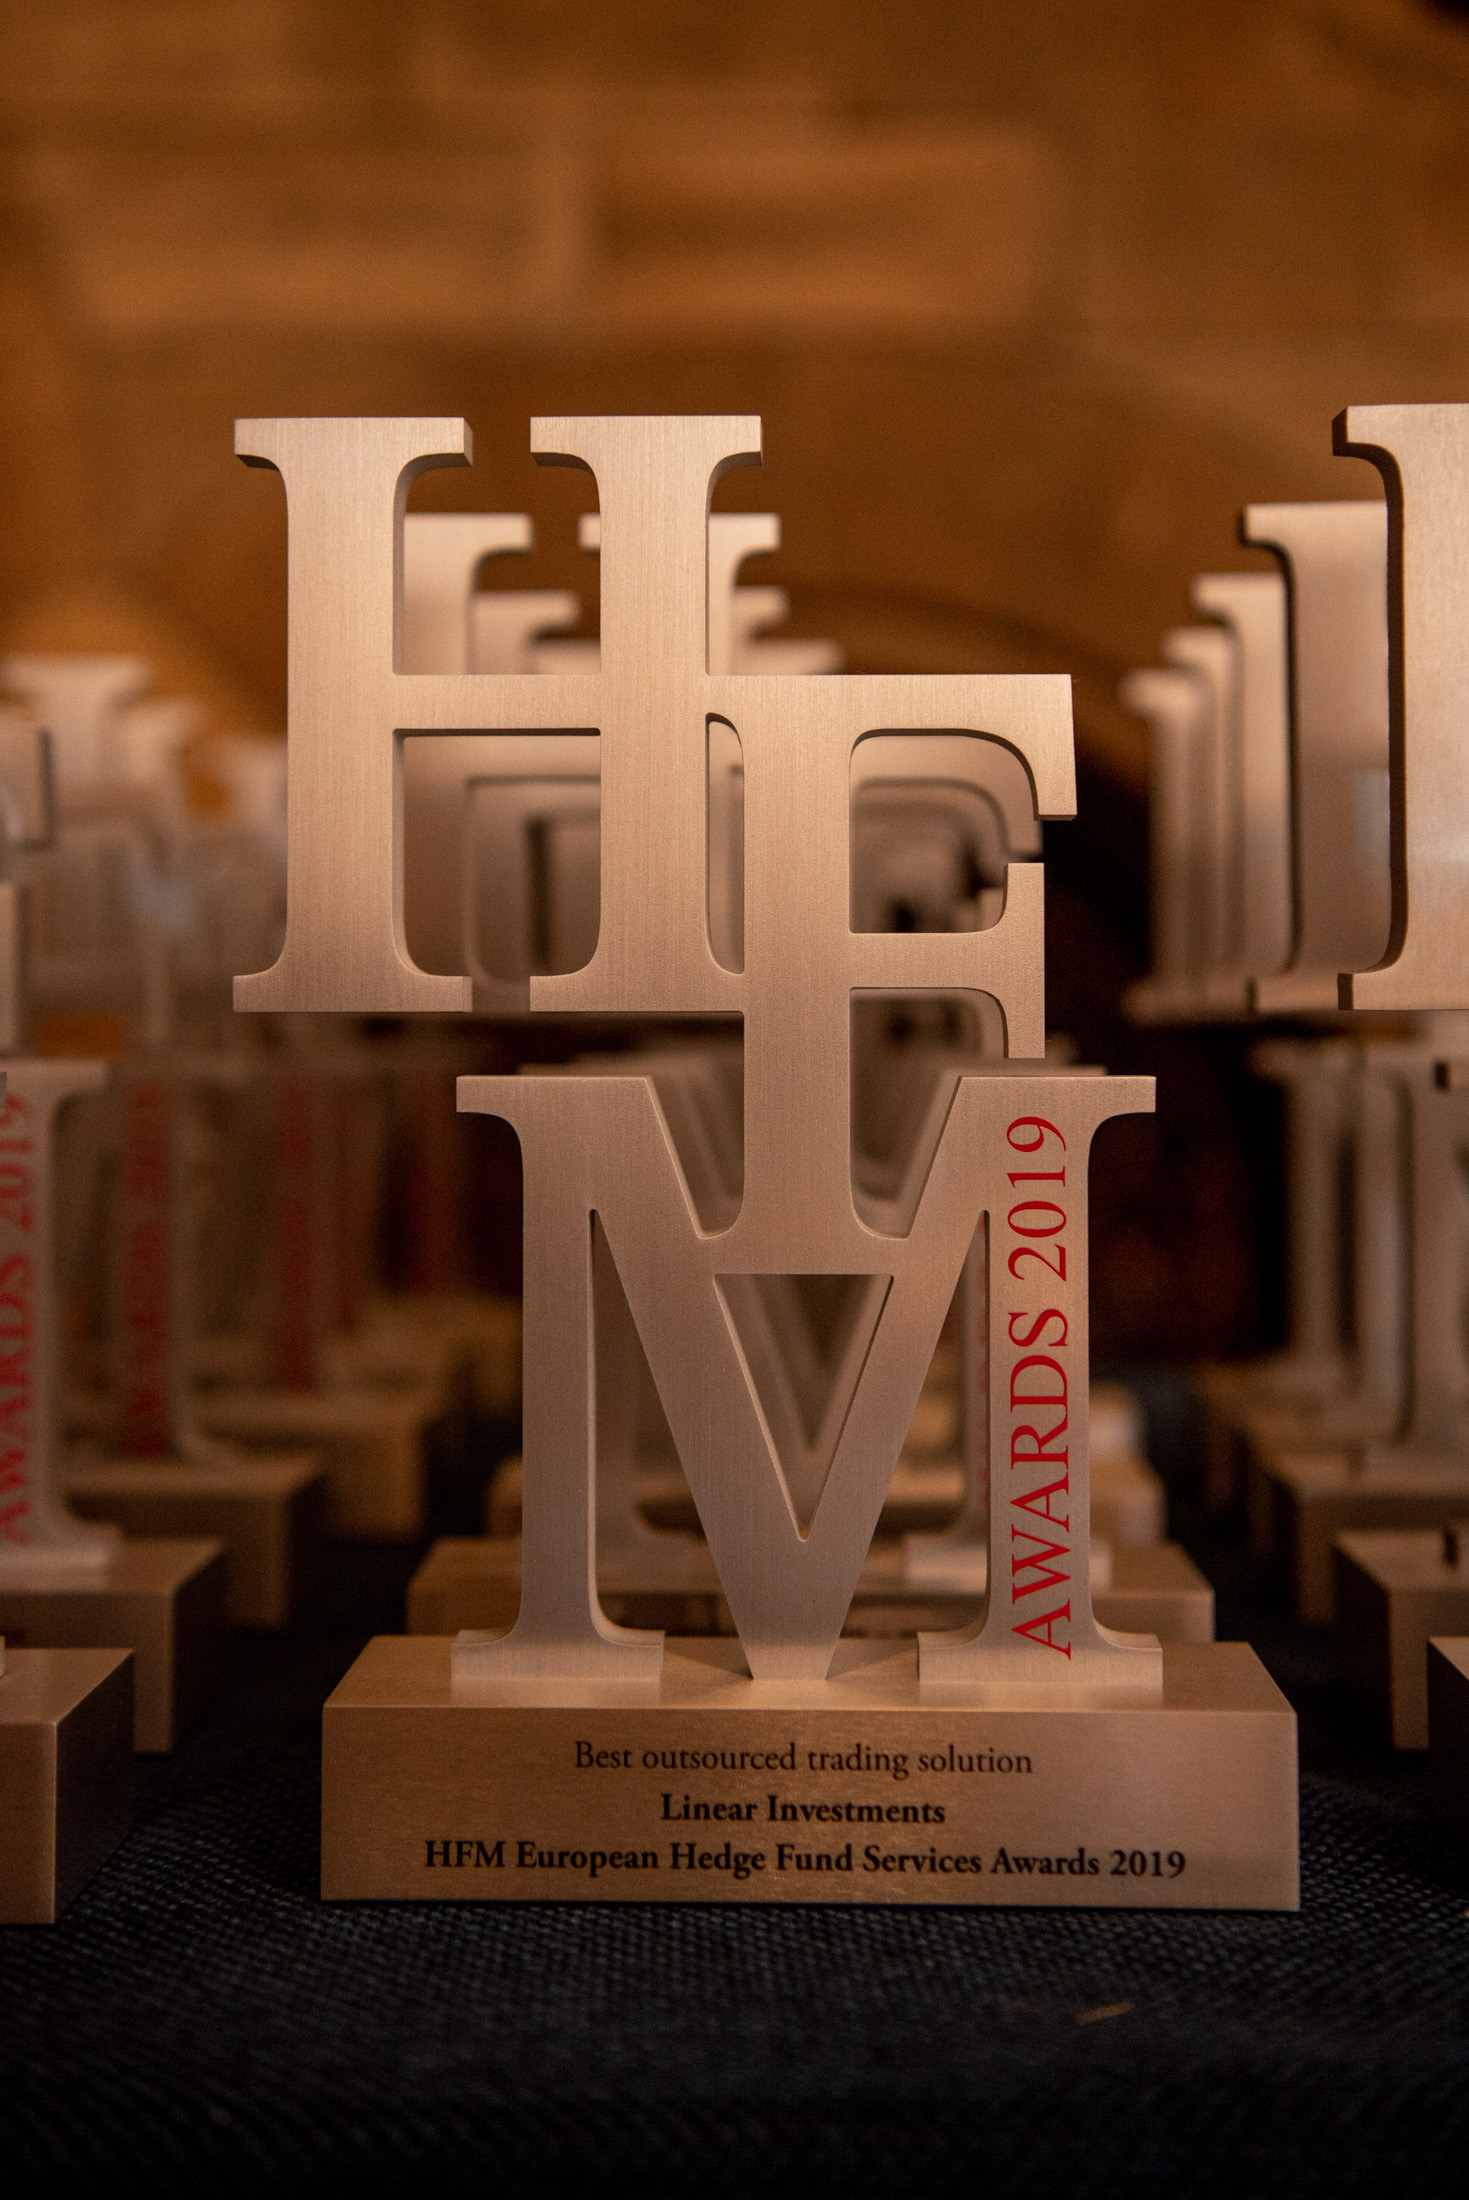 Pageant_Media_HFM_Awards_Event_Photography-5.jpg